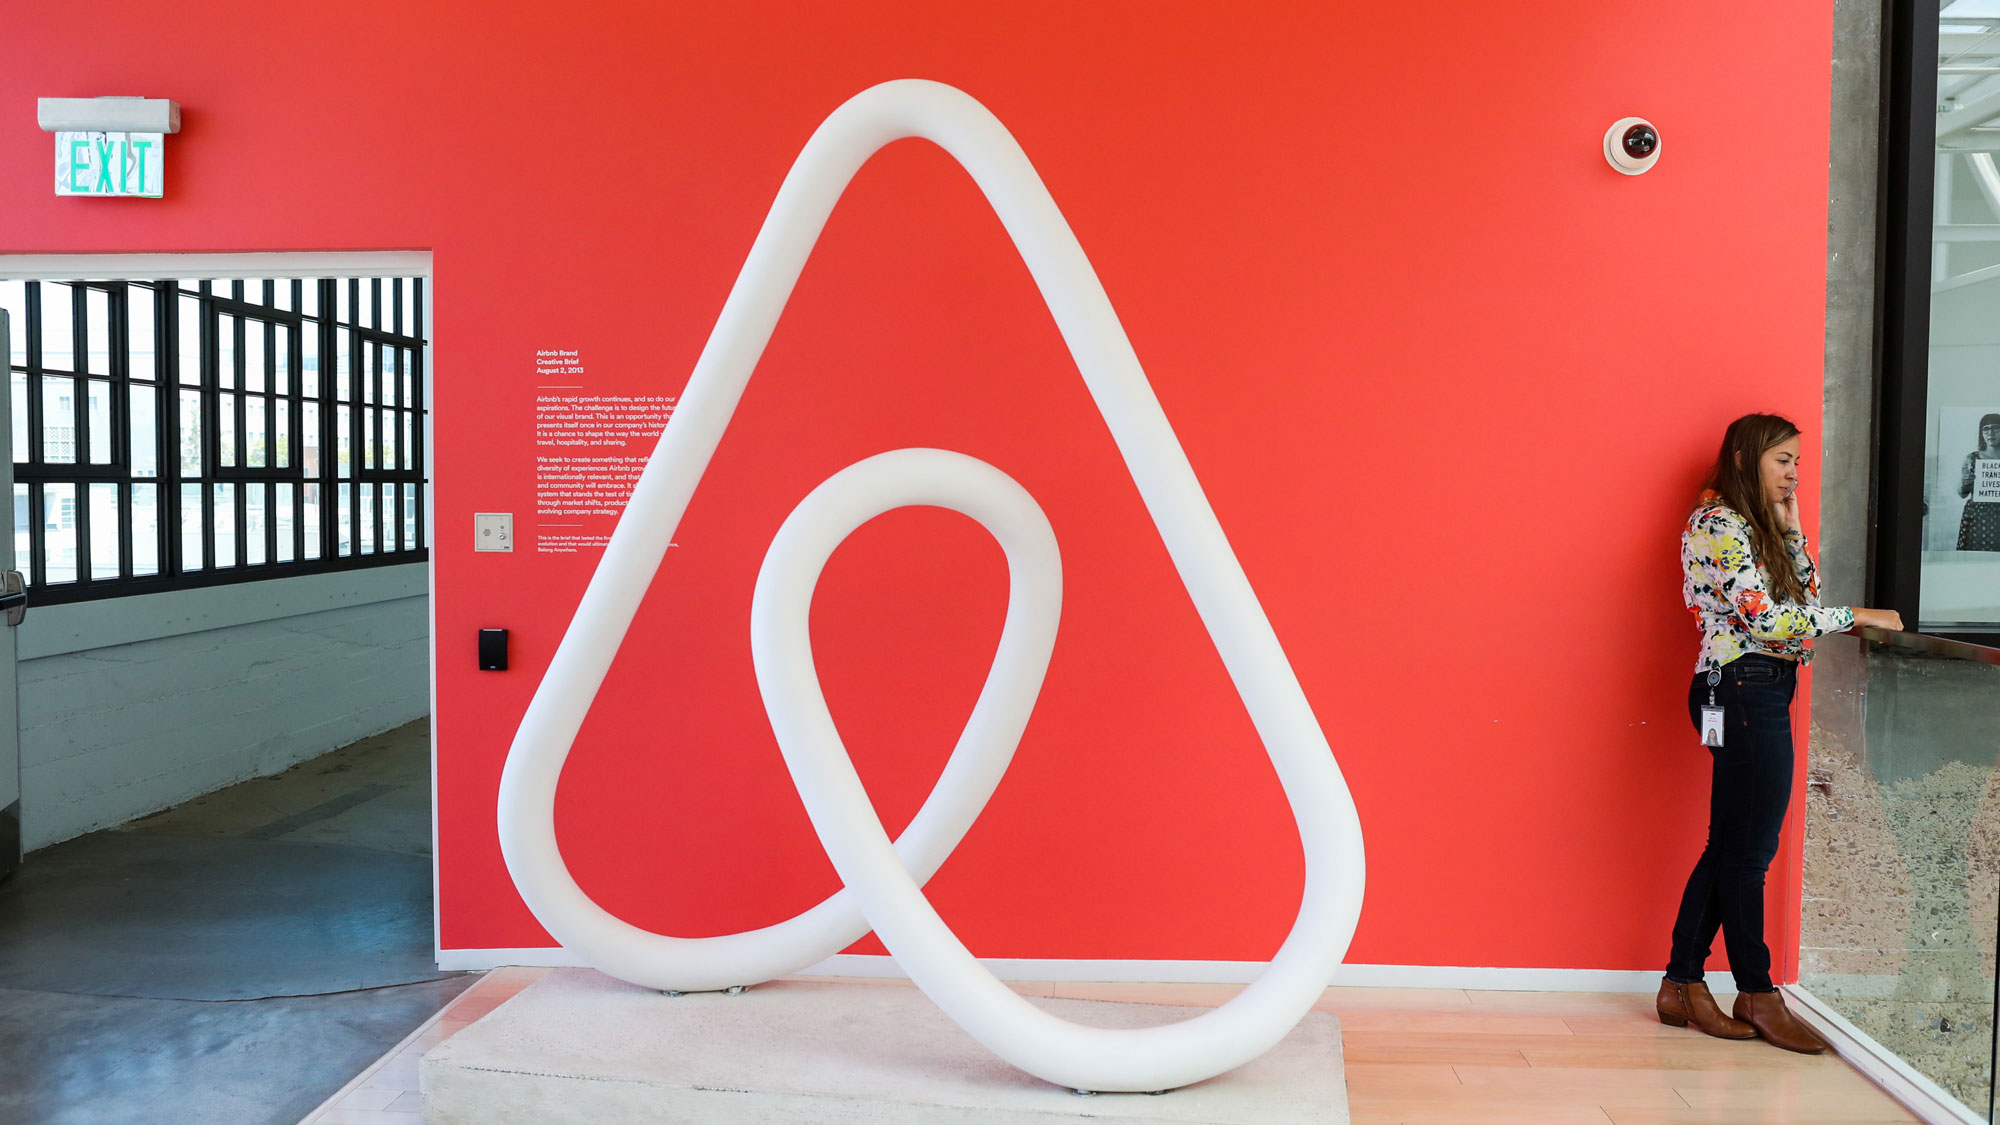 A woman is shown talking on the phone next to a red wall and a large sculpture of the Airbnb logo at the company's headquarters in San Francisco, California.